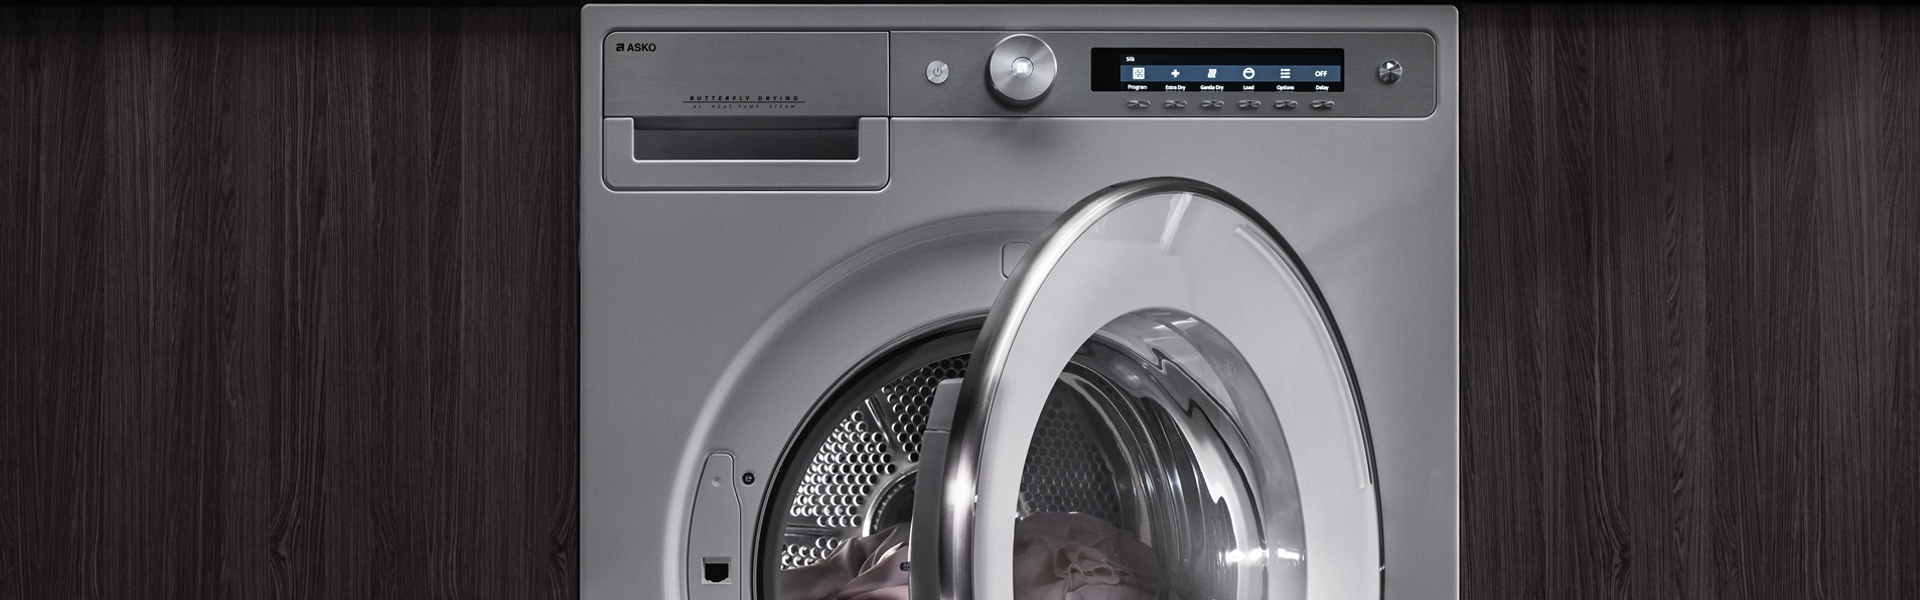 ASKO tumble dryers have programmes for all kinds of laundry